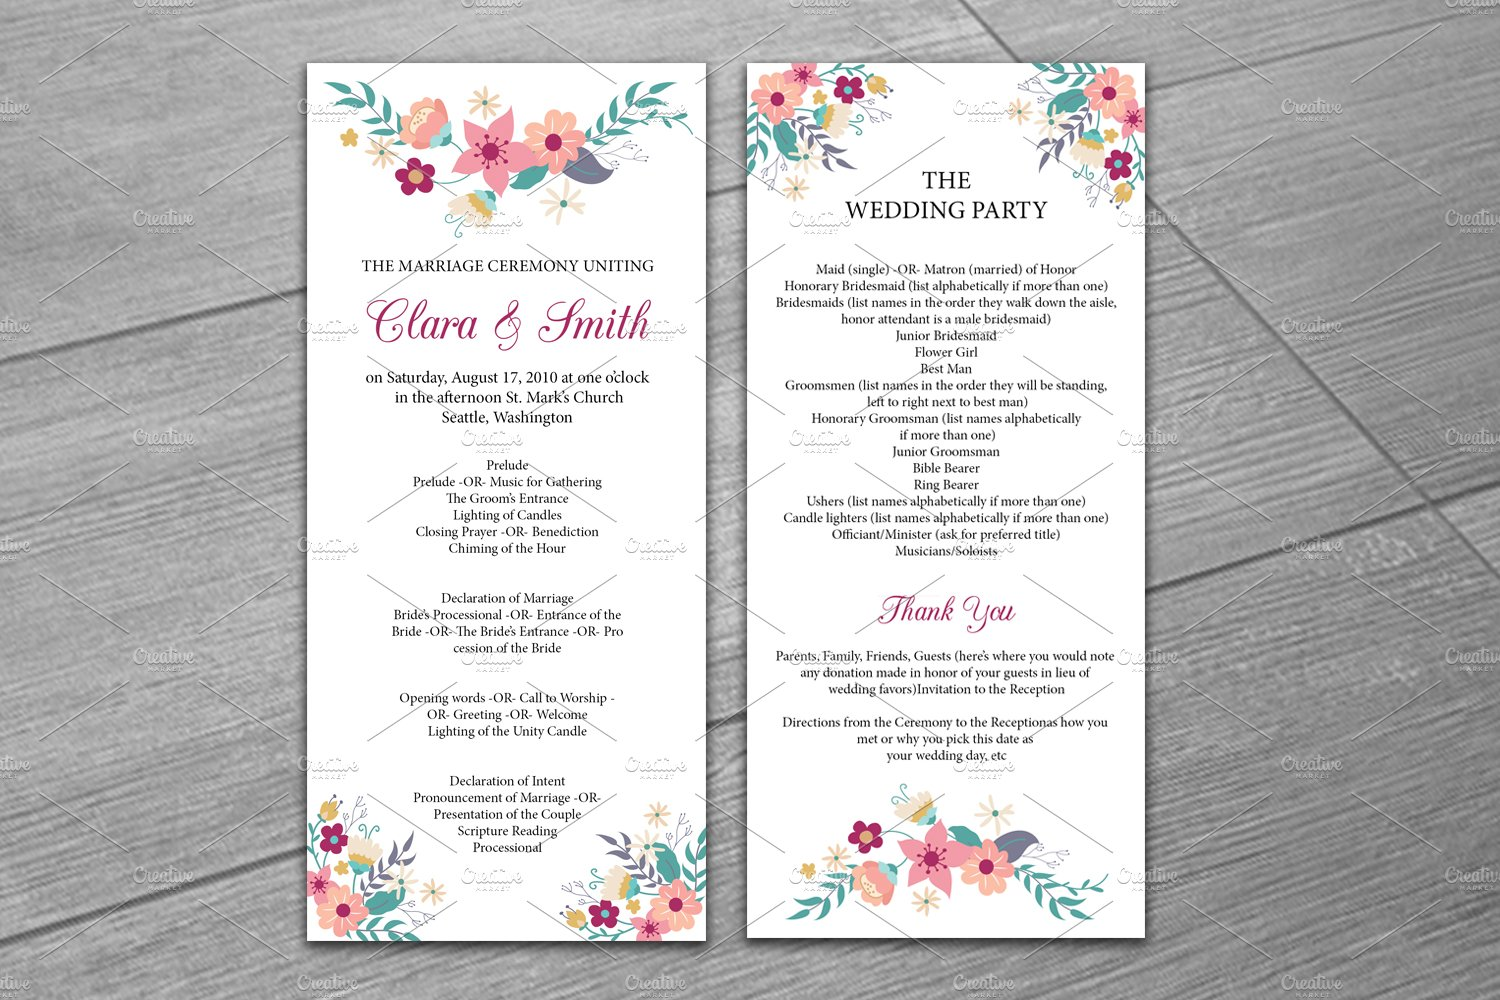 Wedding program template invitation templates creative market stopboris Image collections